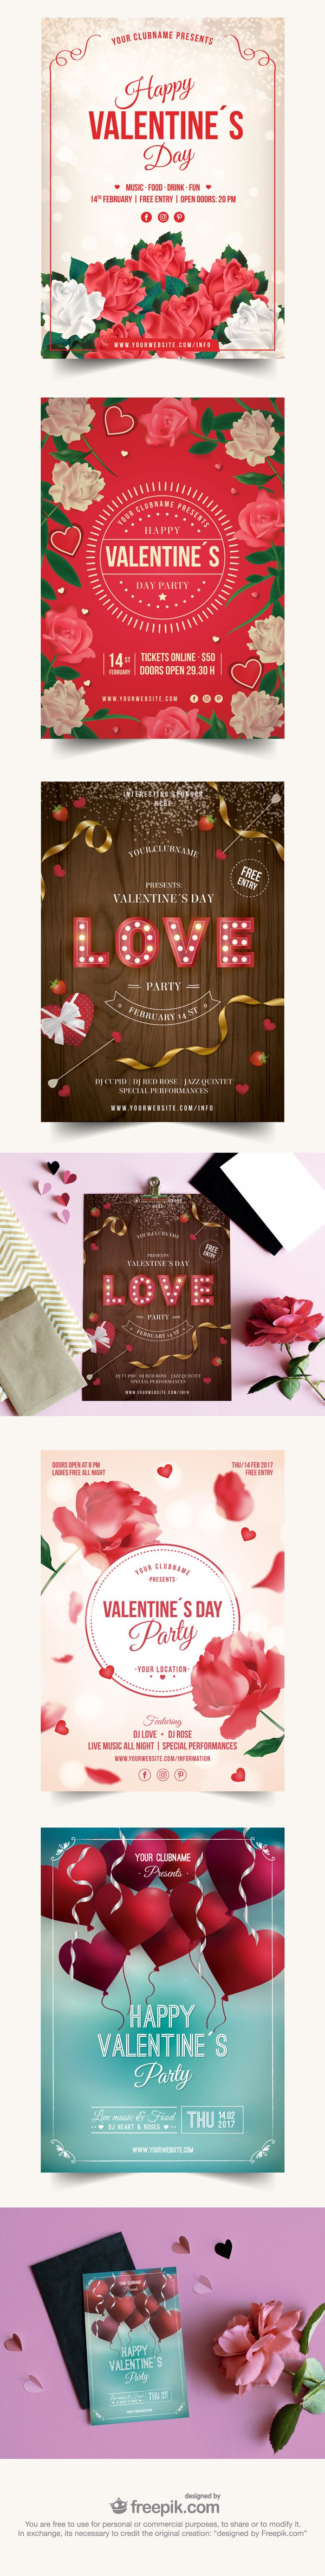 Free Download : 5 Ready To Print Valentine's Day Posters (exclusive)